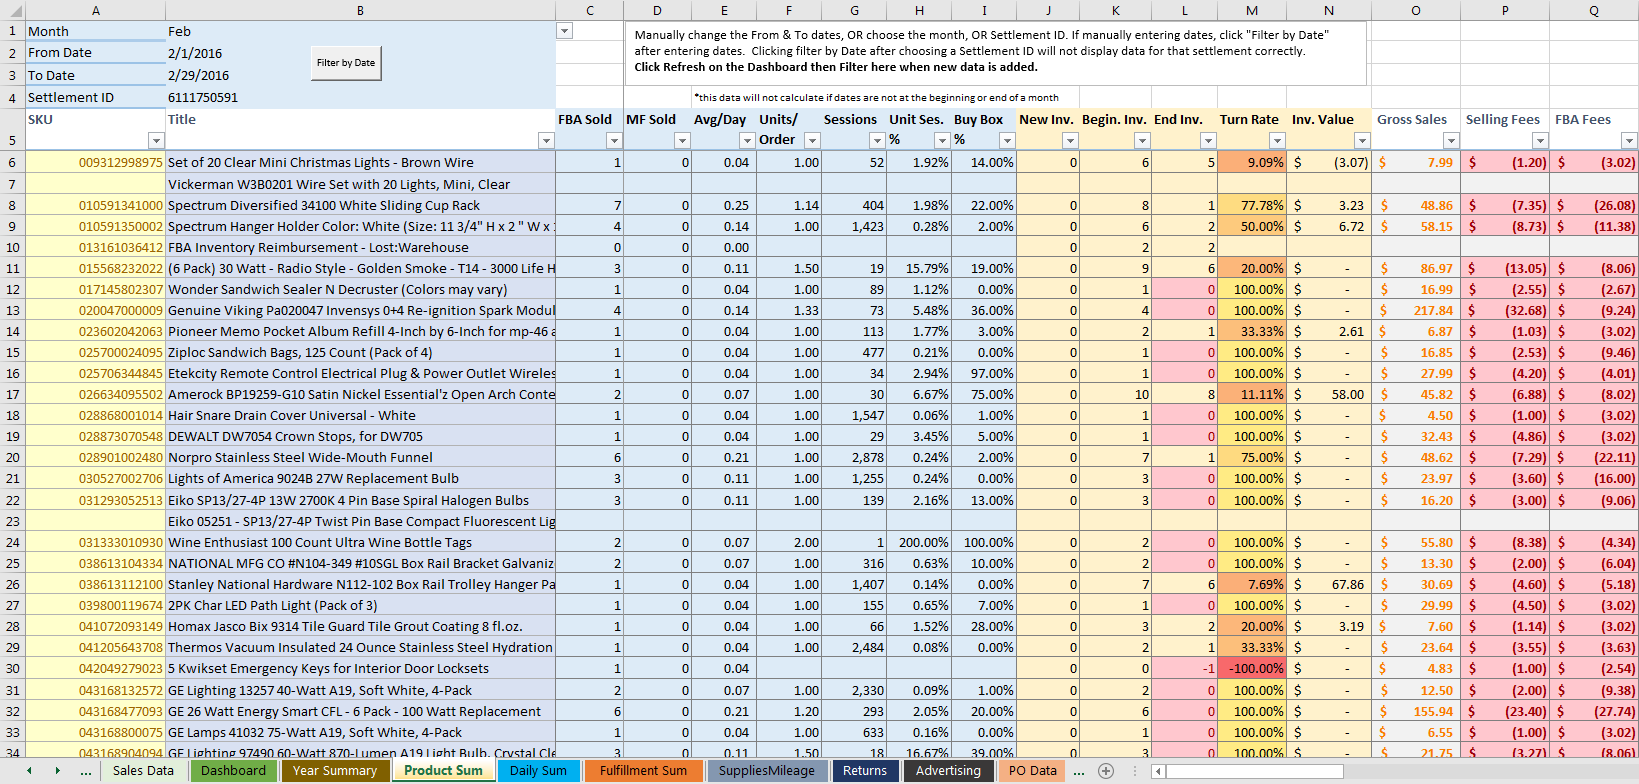 The Ultimate Amazon Fba Sales Spreadsheet V2